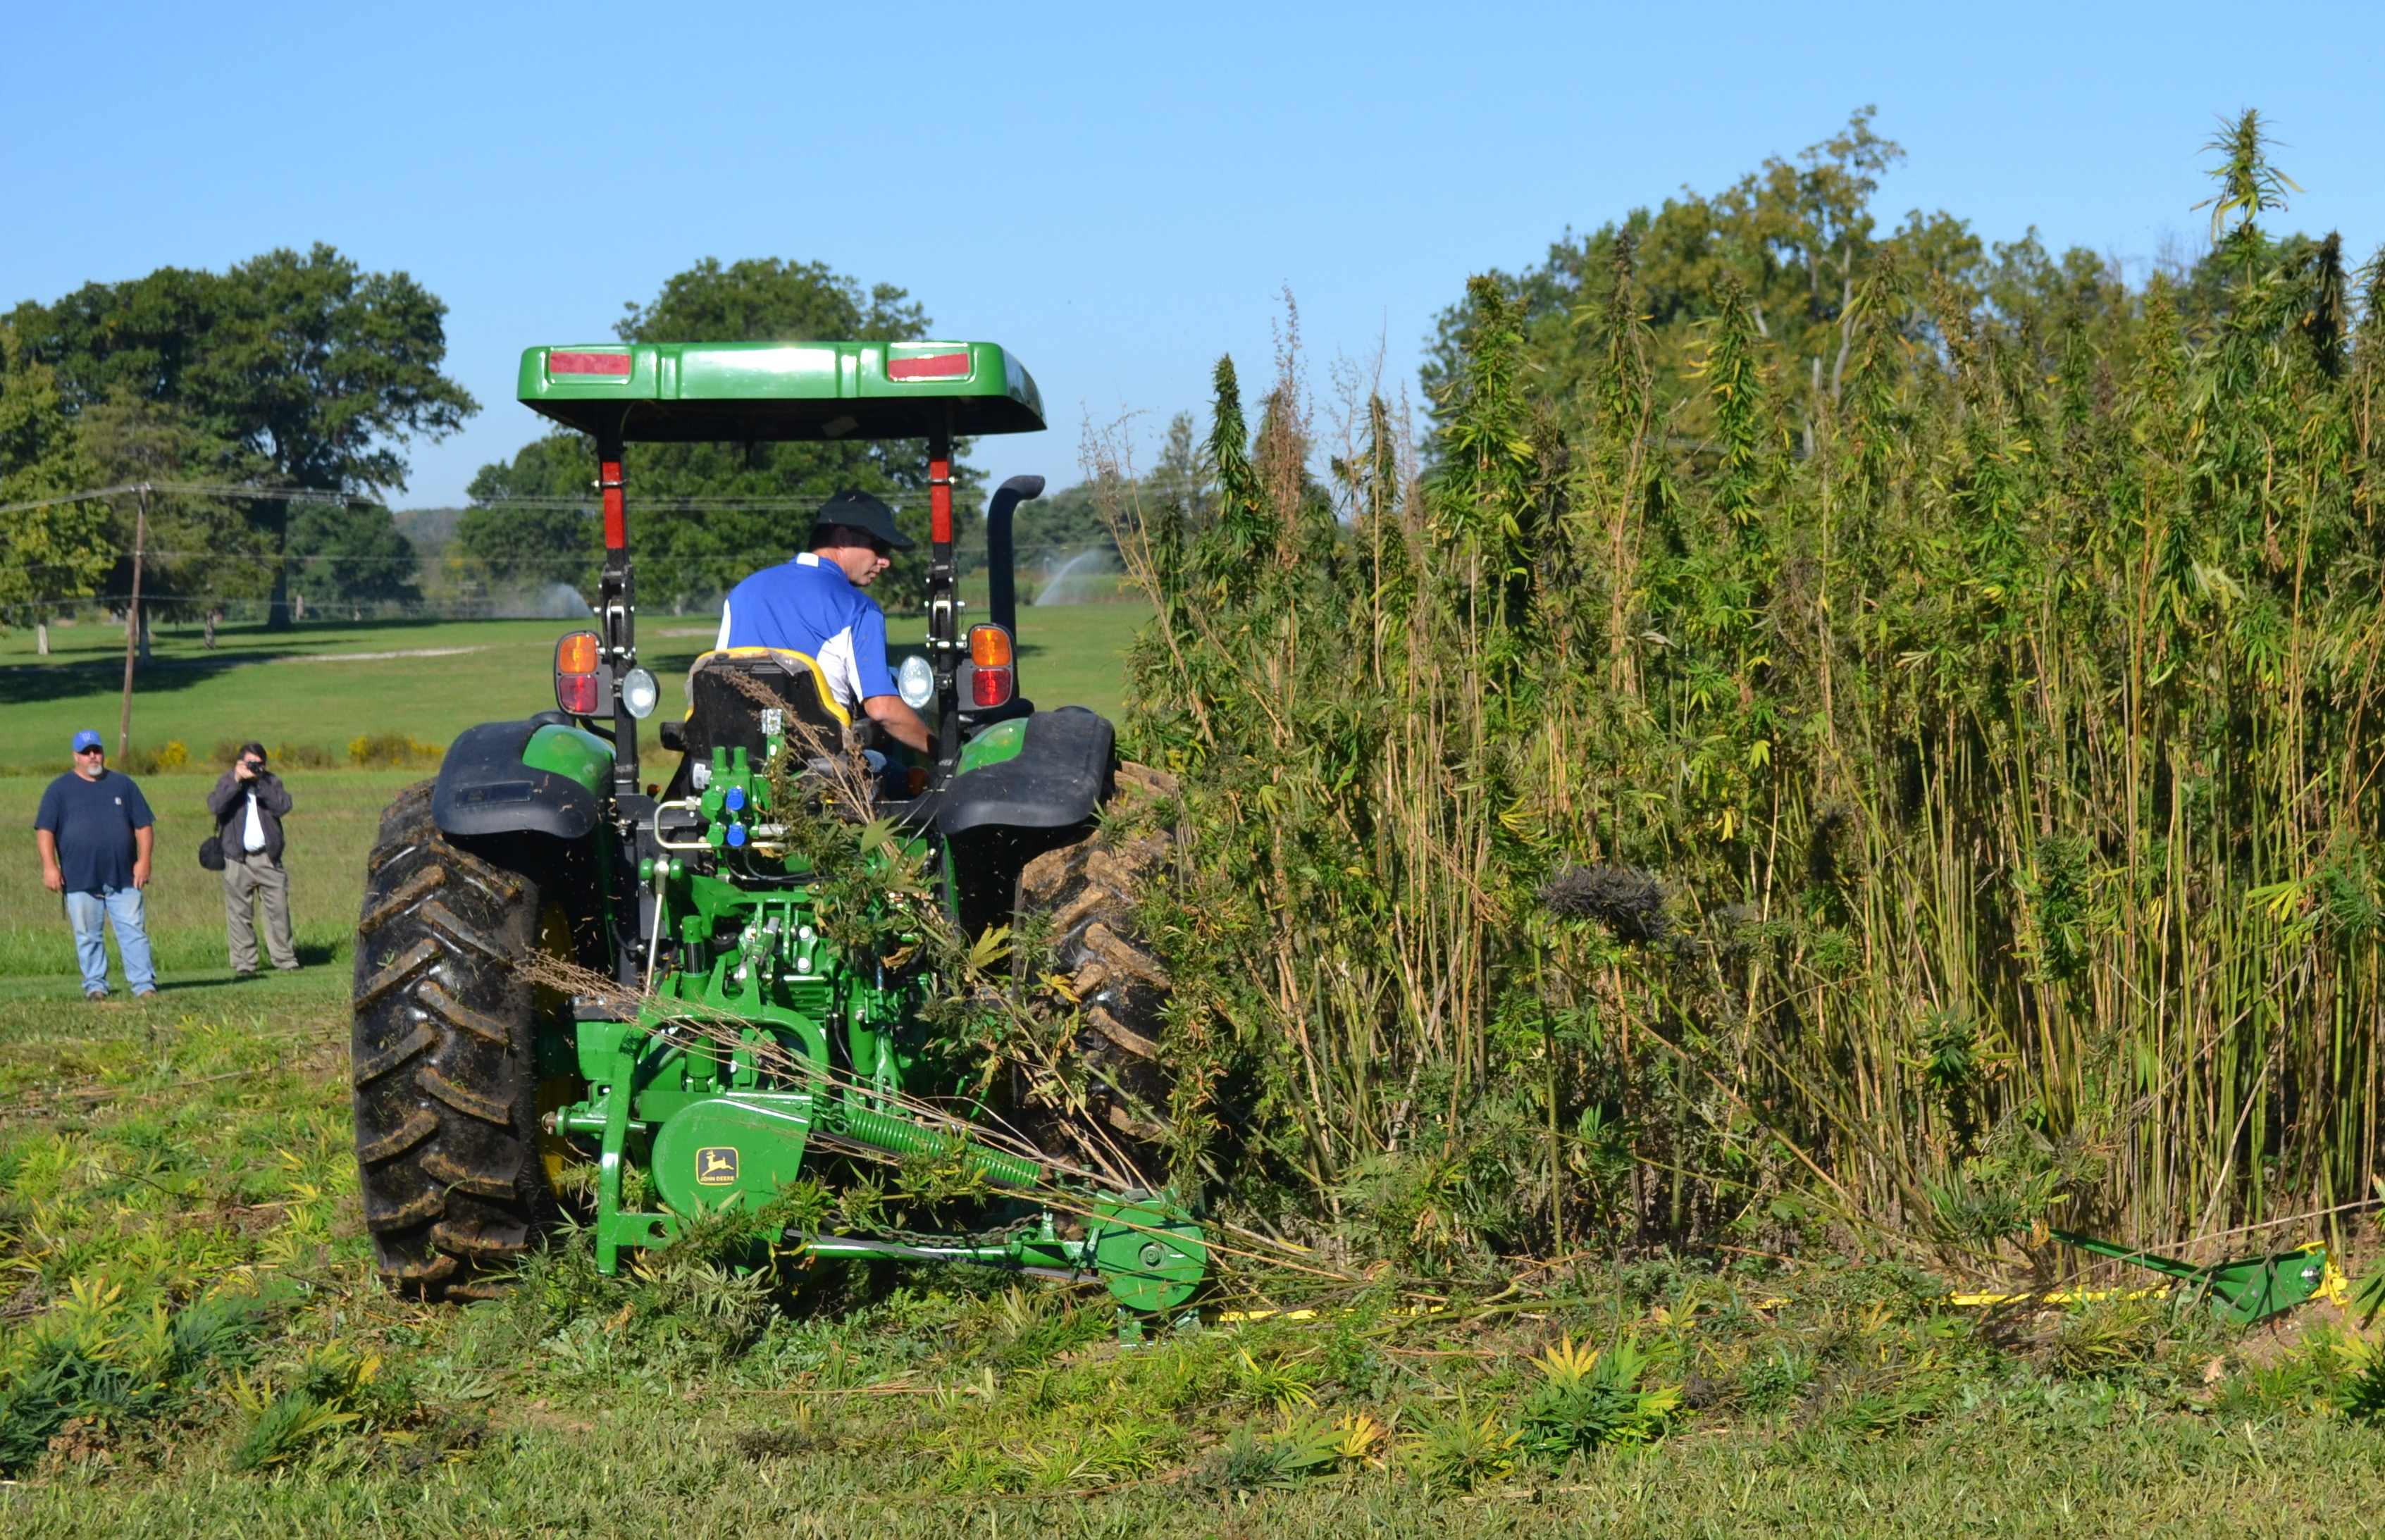 St Croix Tribe Sues Ag Over Plans To Grow Hemp For Cbd Oil Production Wisconsin Public Radio